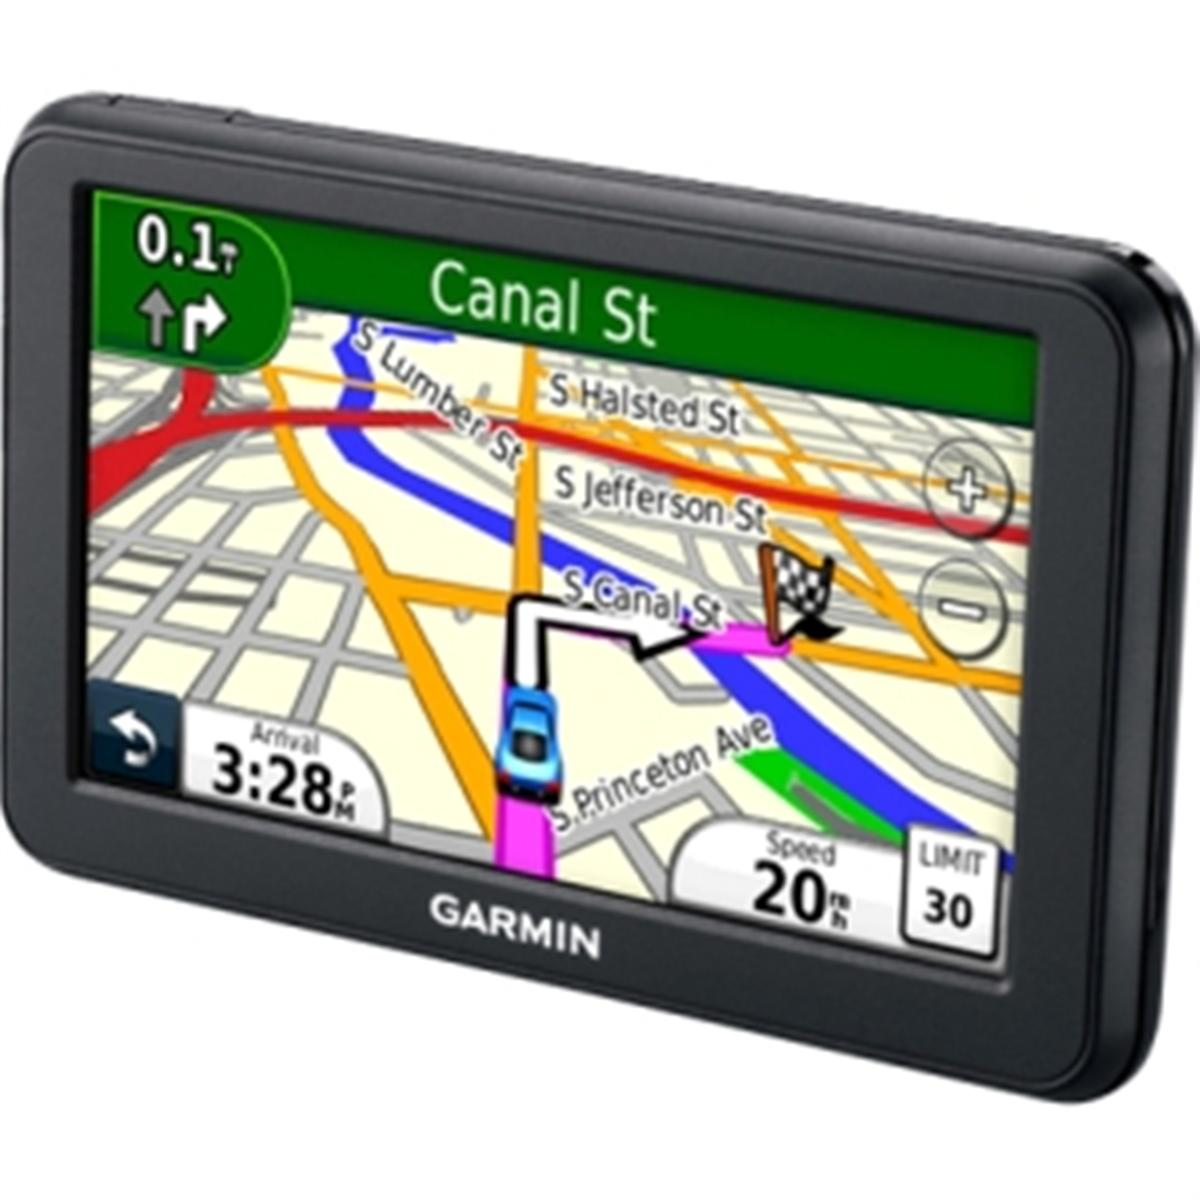 Garmin nuvi 50lm case / La gourmet pizza menu